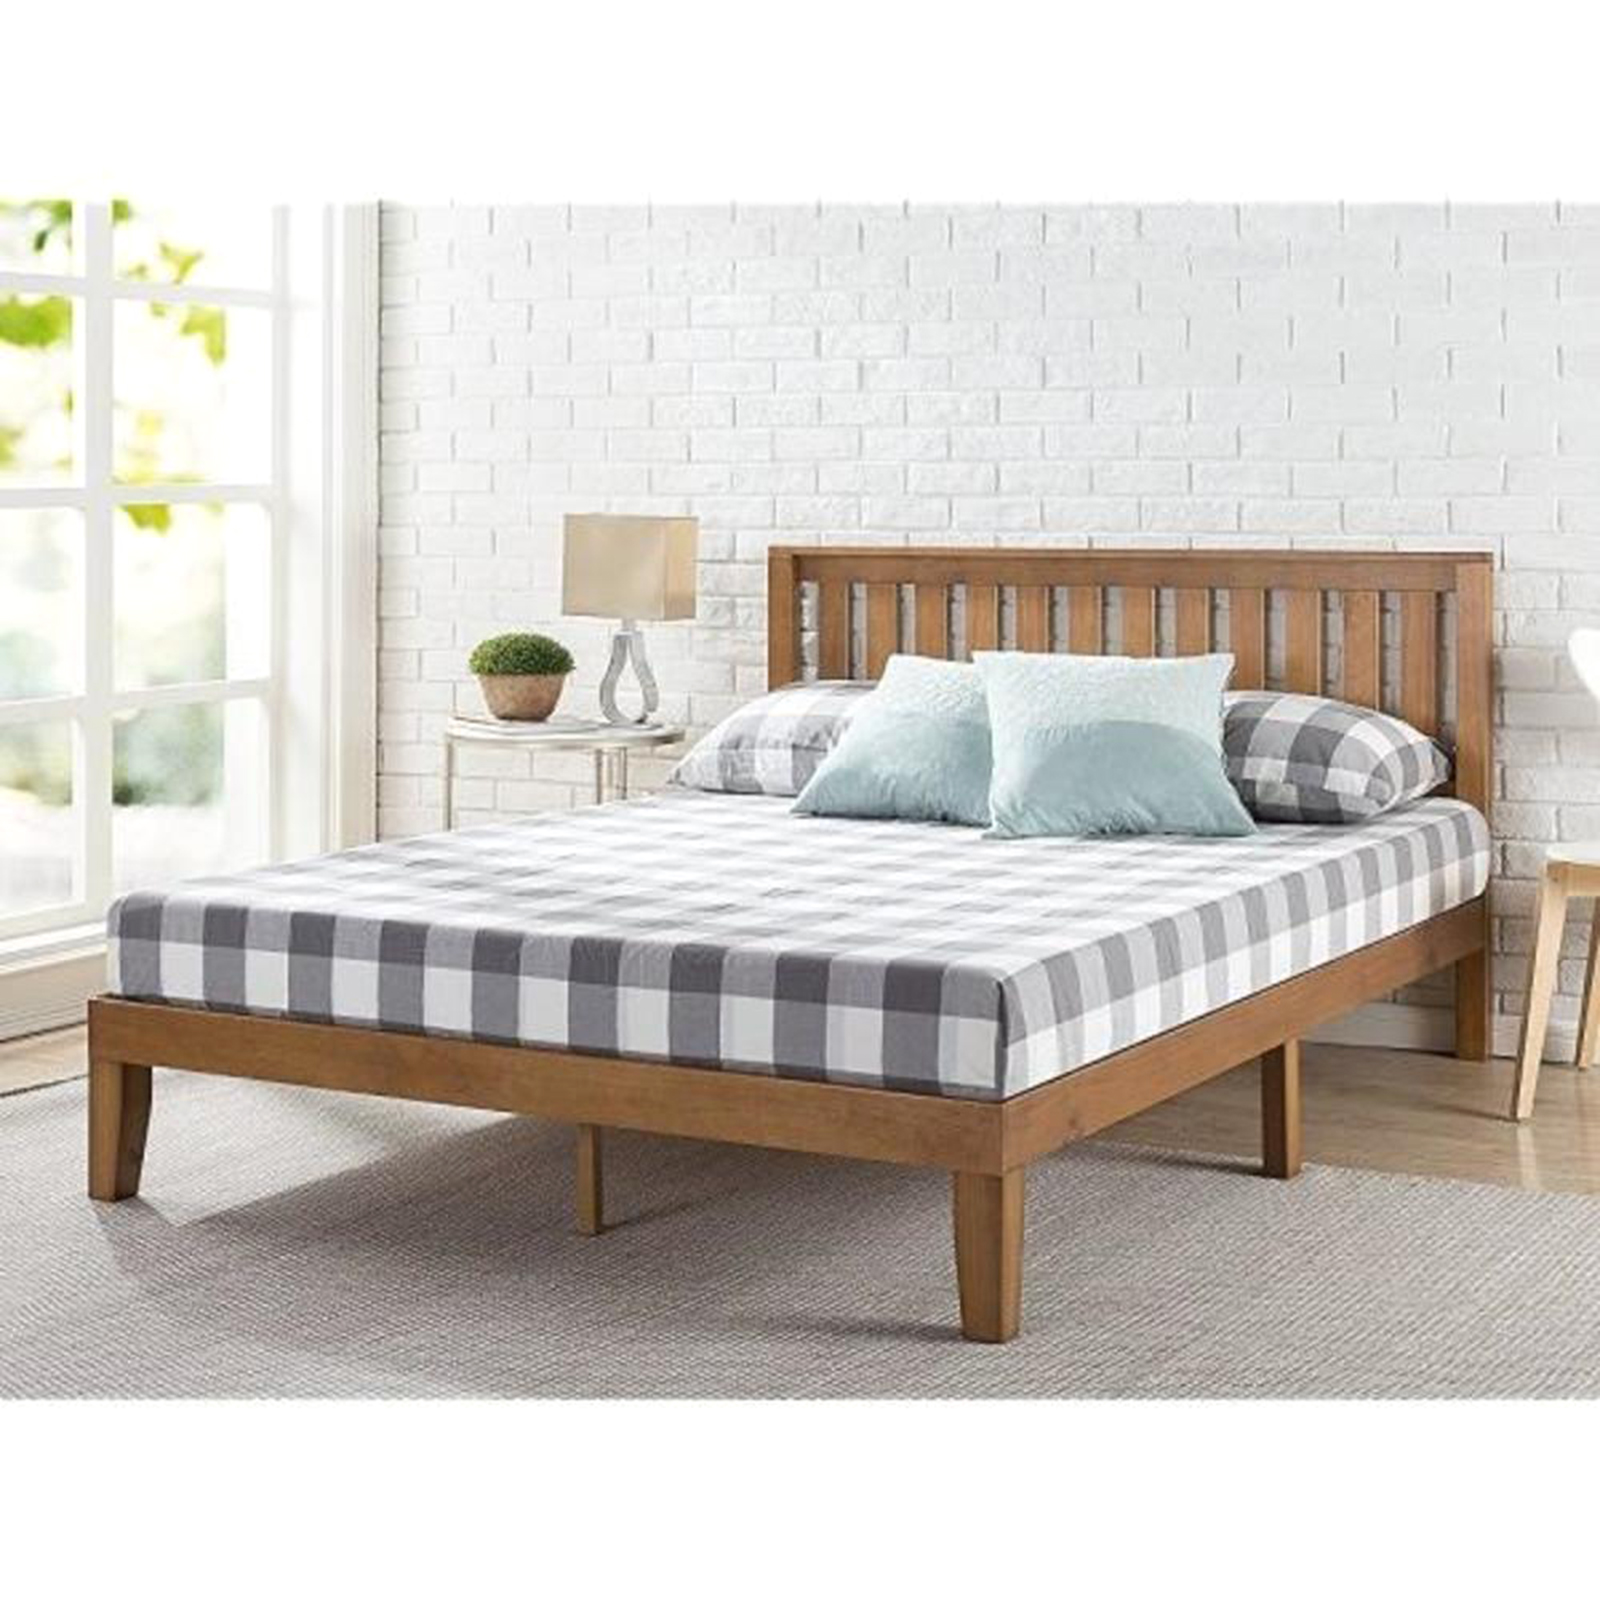 Zinus Queen Wood Platform Bed Frame Sears Marketplace